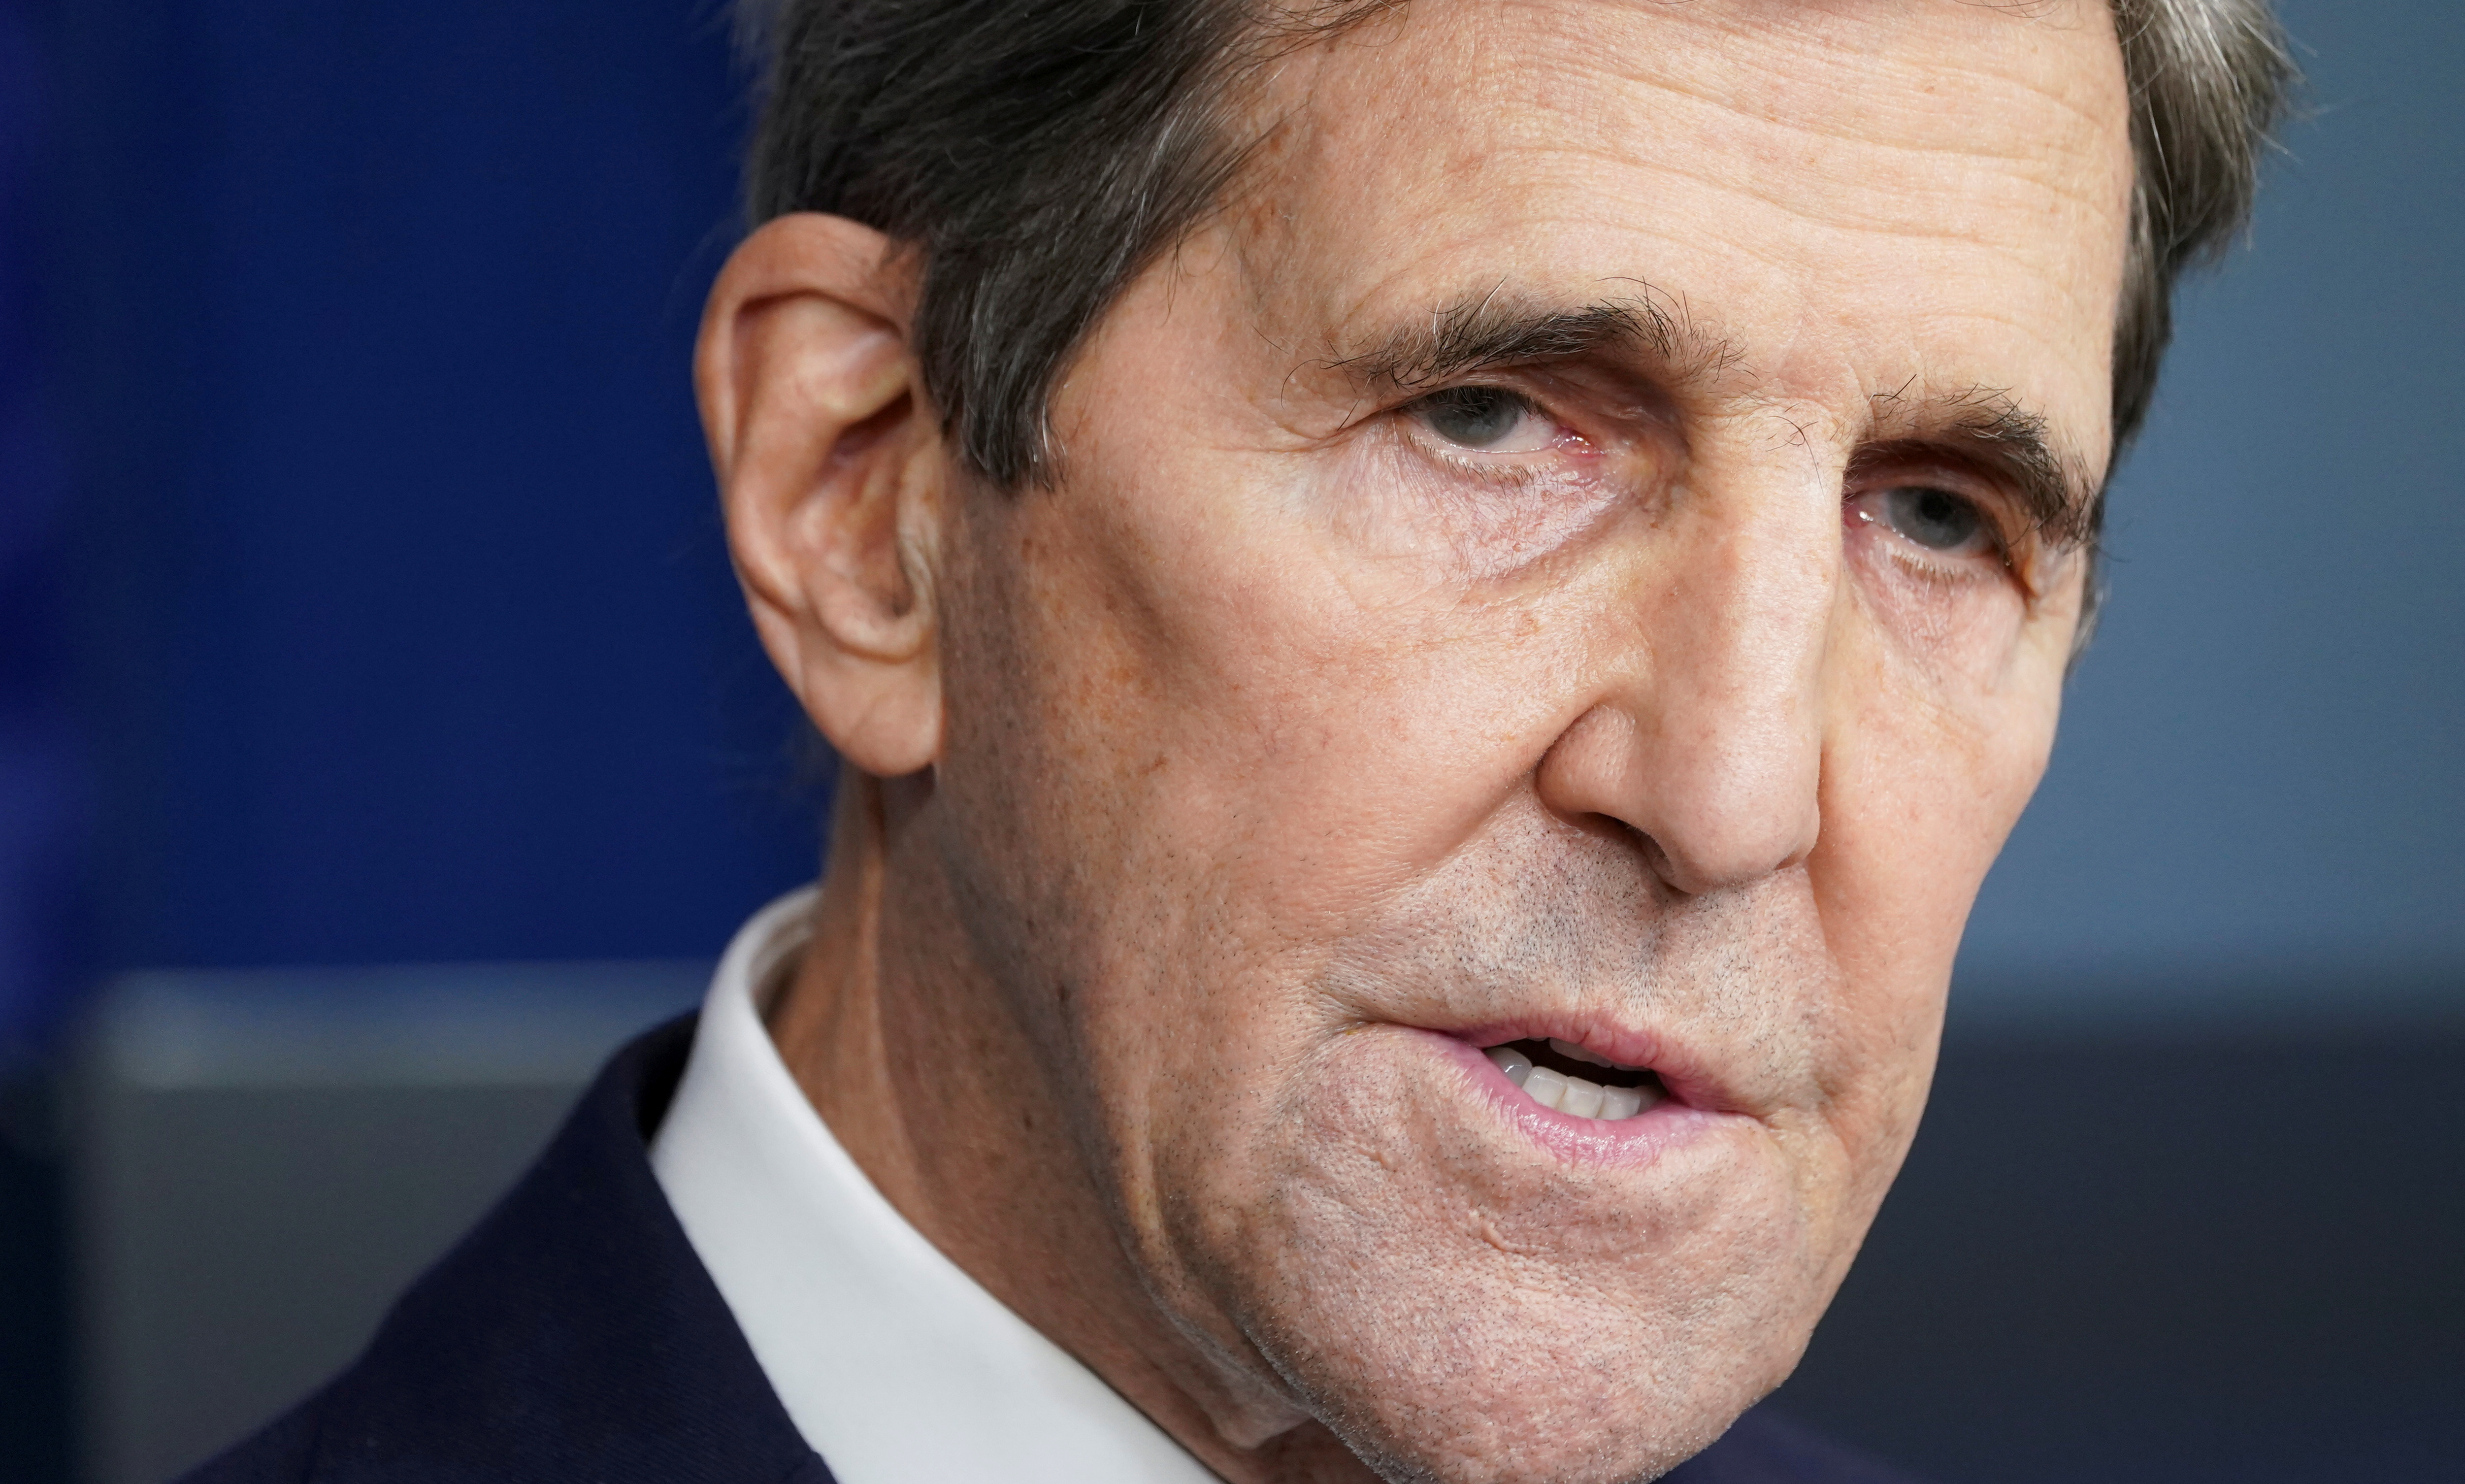 U.S. climate envoy John Kerry speaks at a press briefing at the White House in Washington, U.S., January 27, 2021.  REUTERS/Kevin Lamarque/File Photo